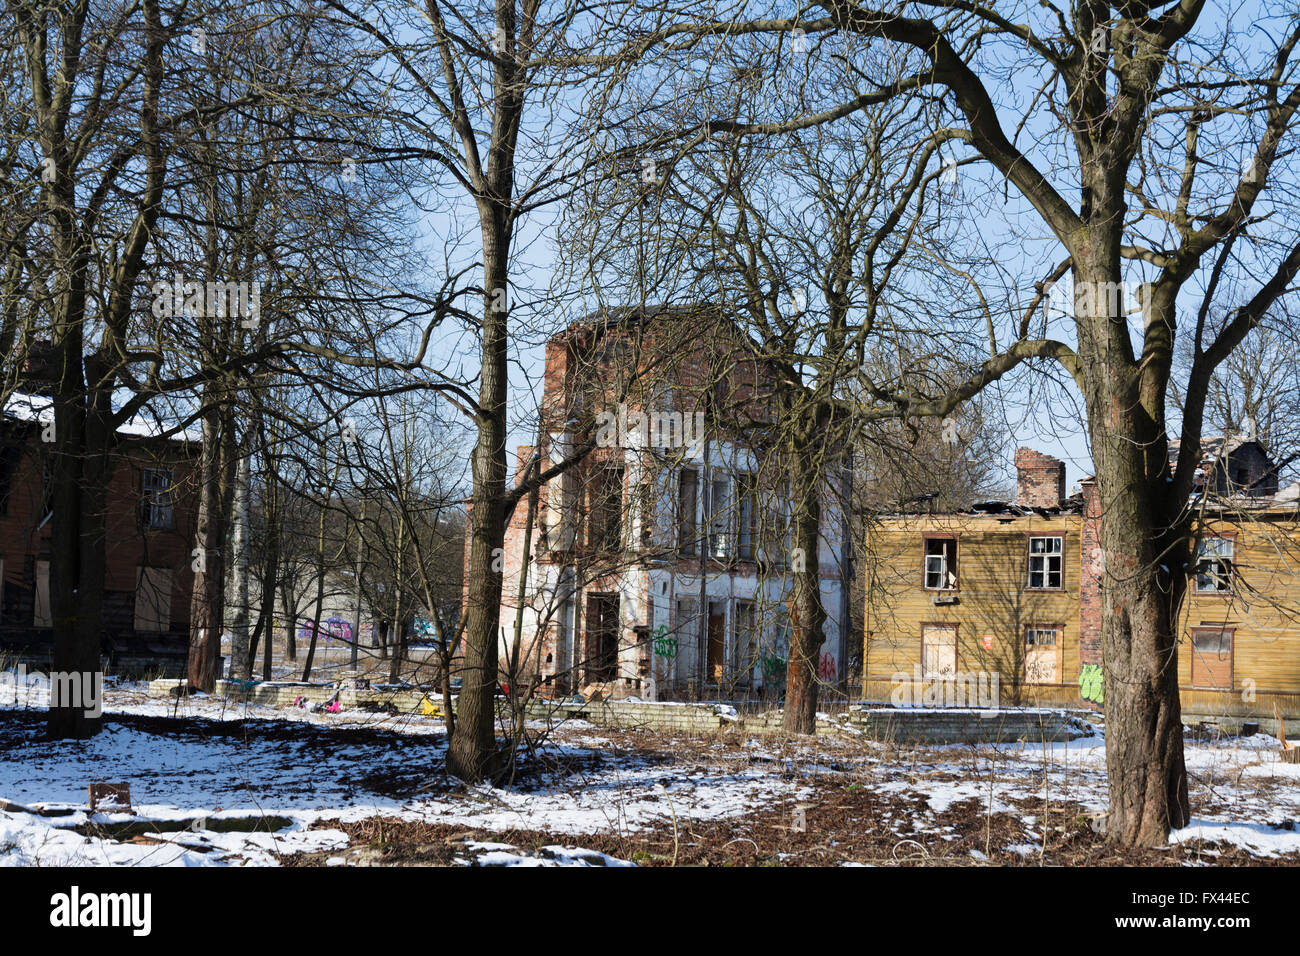 Burned and Demolished old wooden houses in Kopli Tallinn Estonia - Stock Image